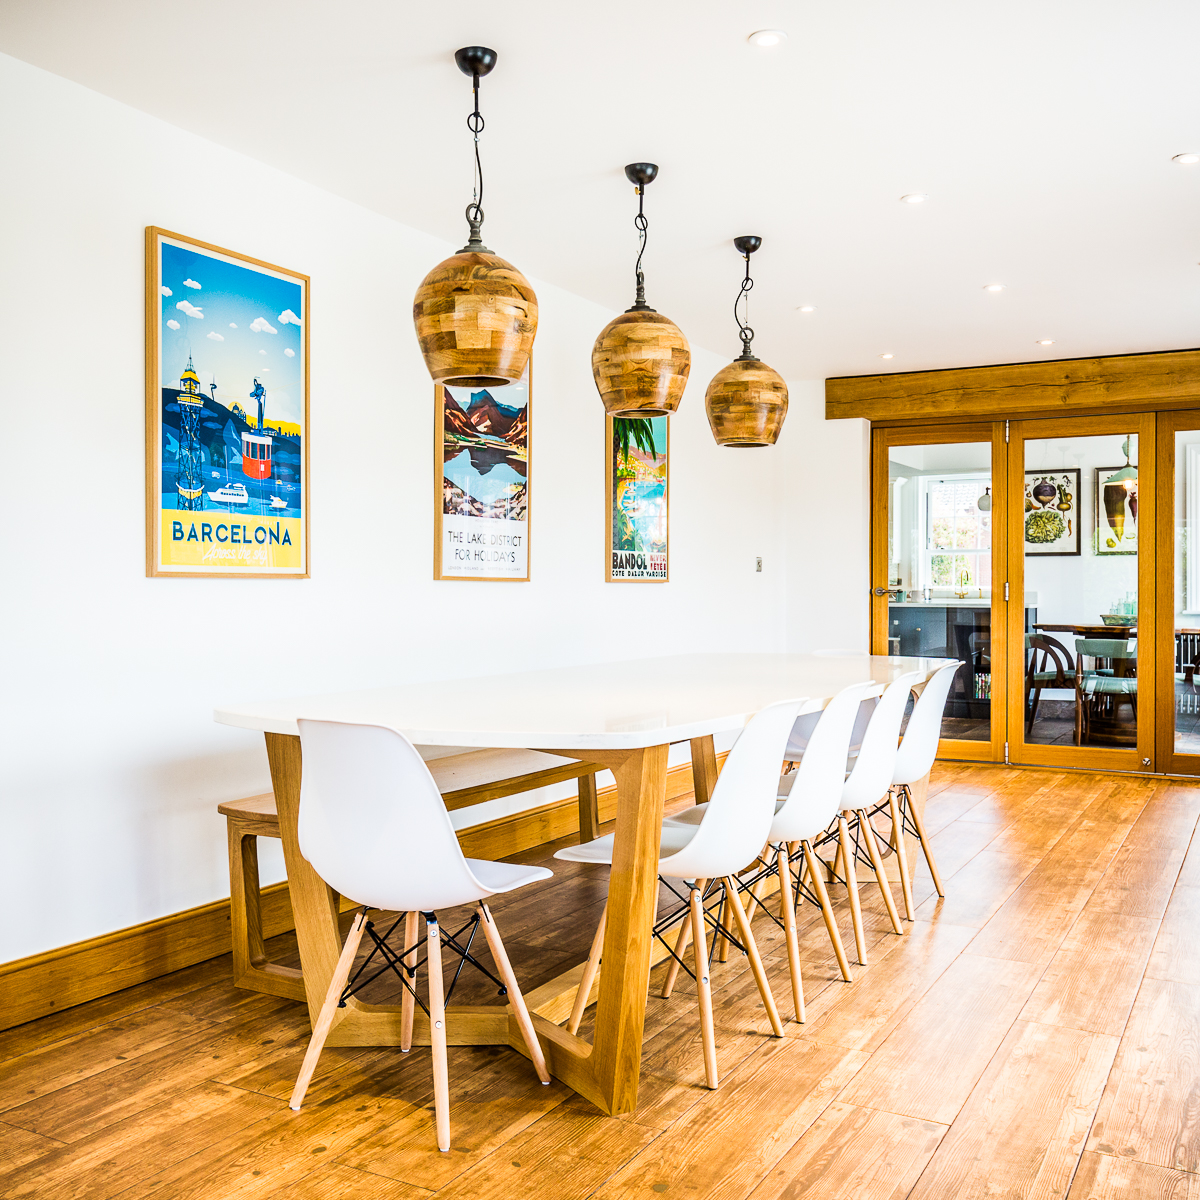 Photography for Estate Agents